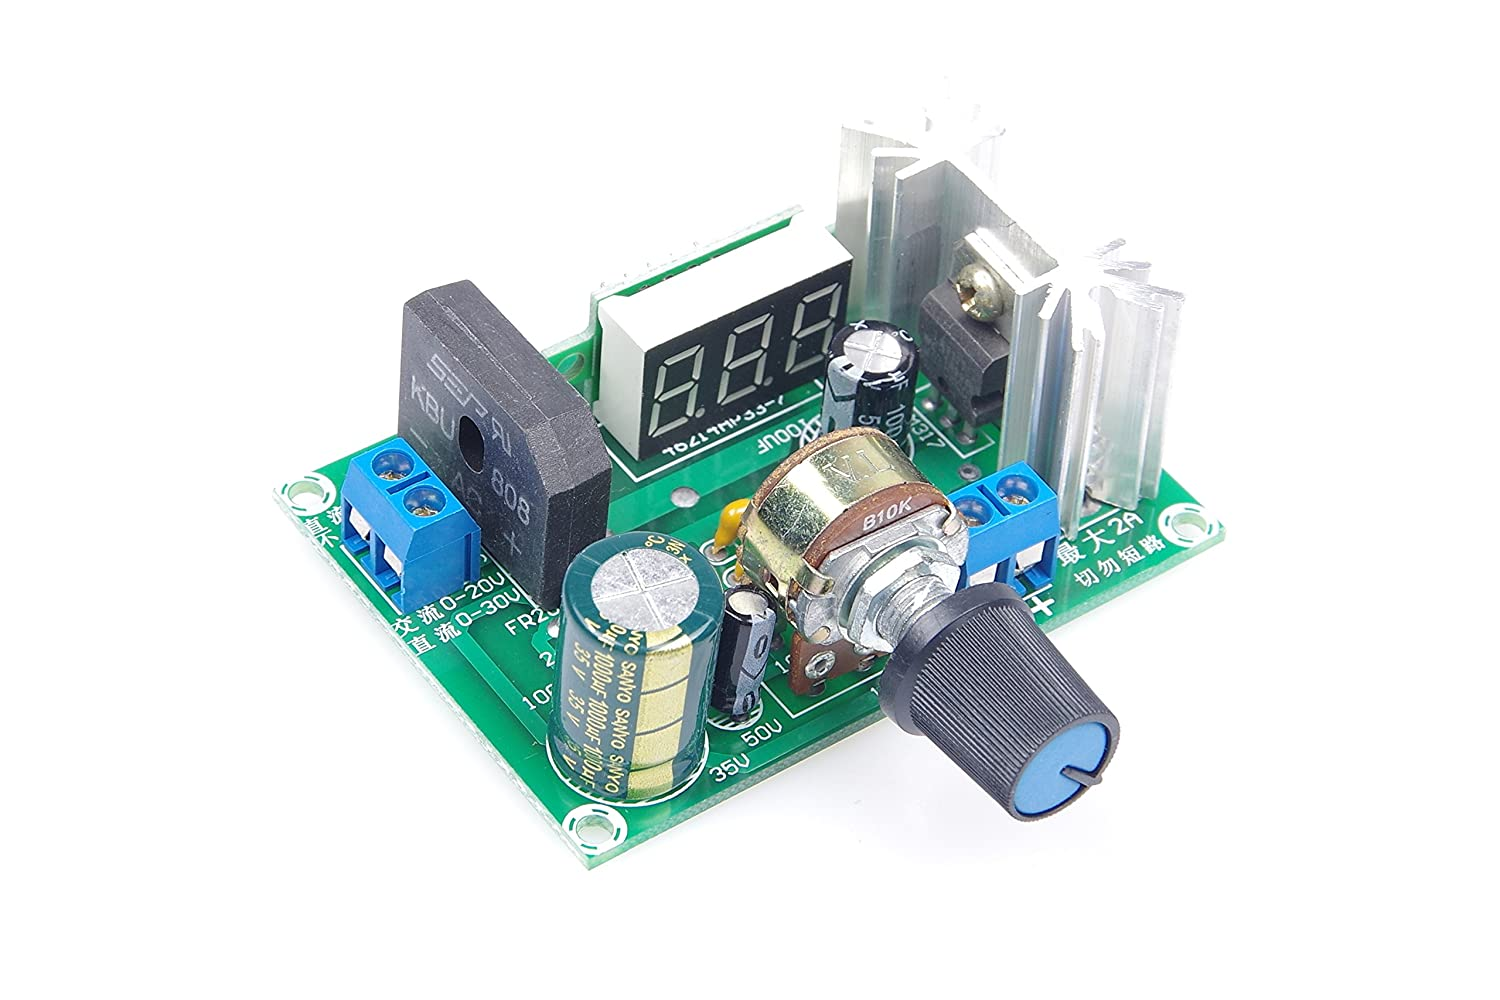 Knacro Led Lm317 Step Down Power Supply Module And Built The Circuit As Shown Using An Voltage Regulator Adjustable Input Dc 0v 30v Ac 22v Output 125v 2a Electronics